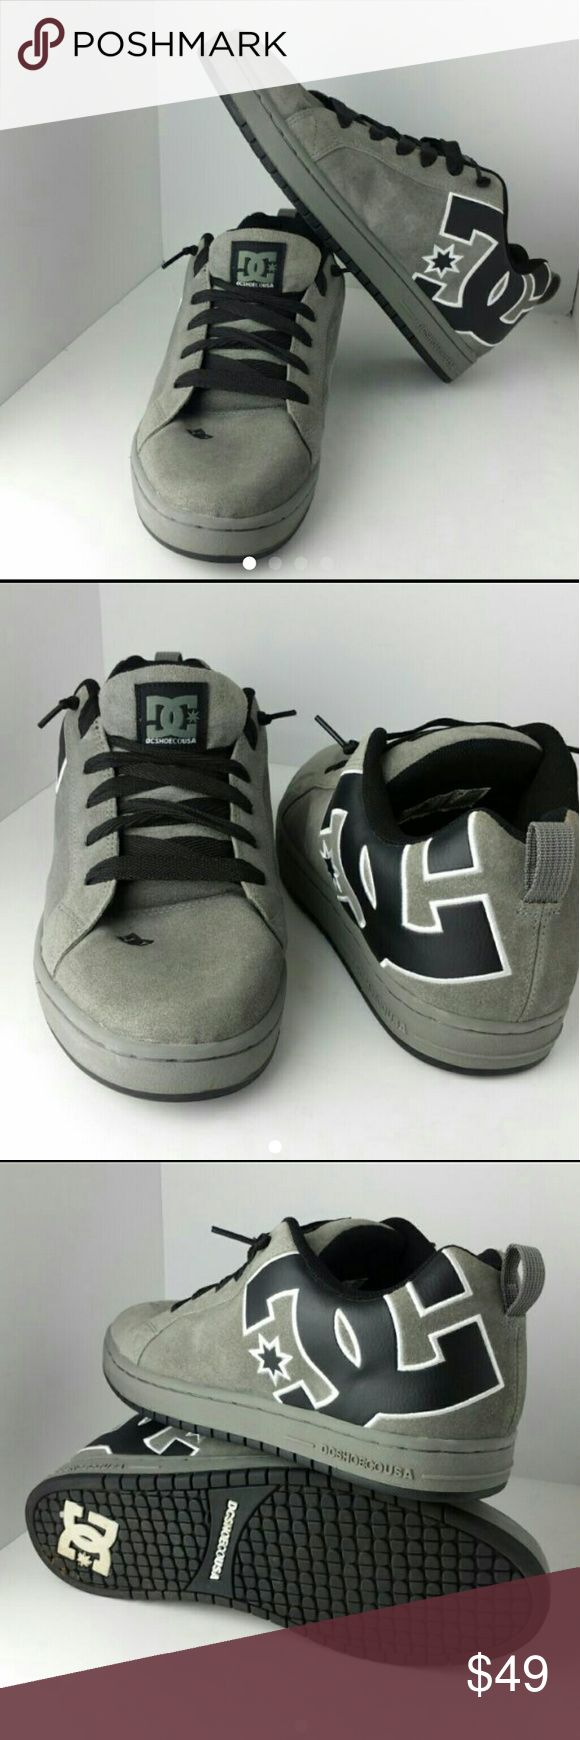 DC SHOES MEN'S FASHION SNEAKERS LIKE NEW   SKE # JZ dc shoes  Shoes Sneakers